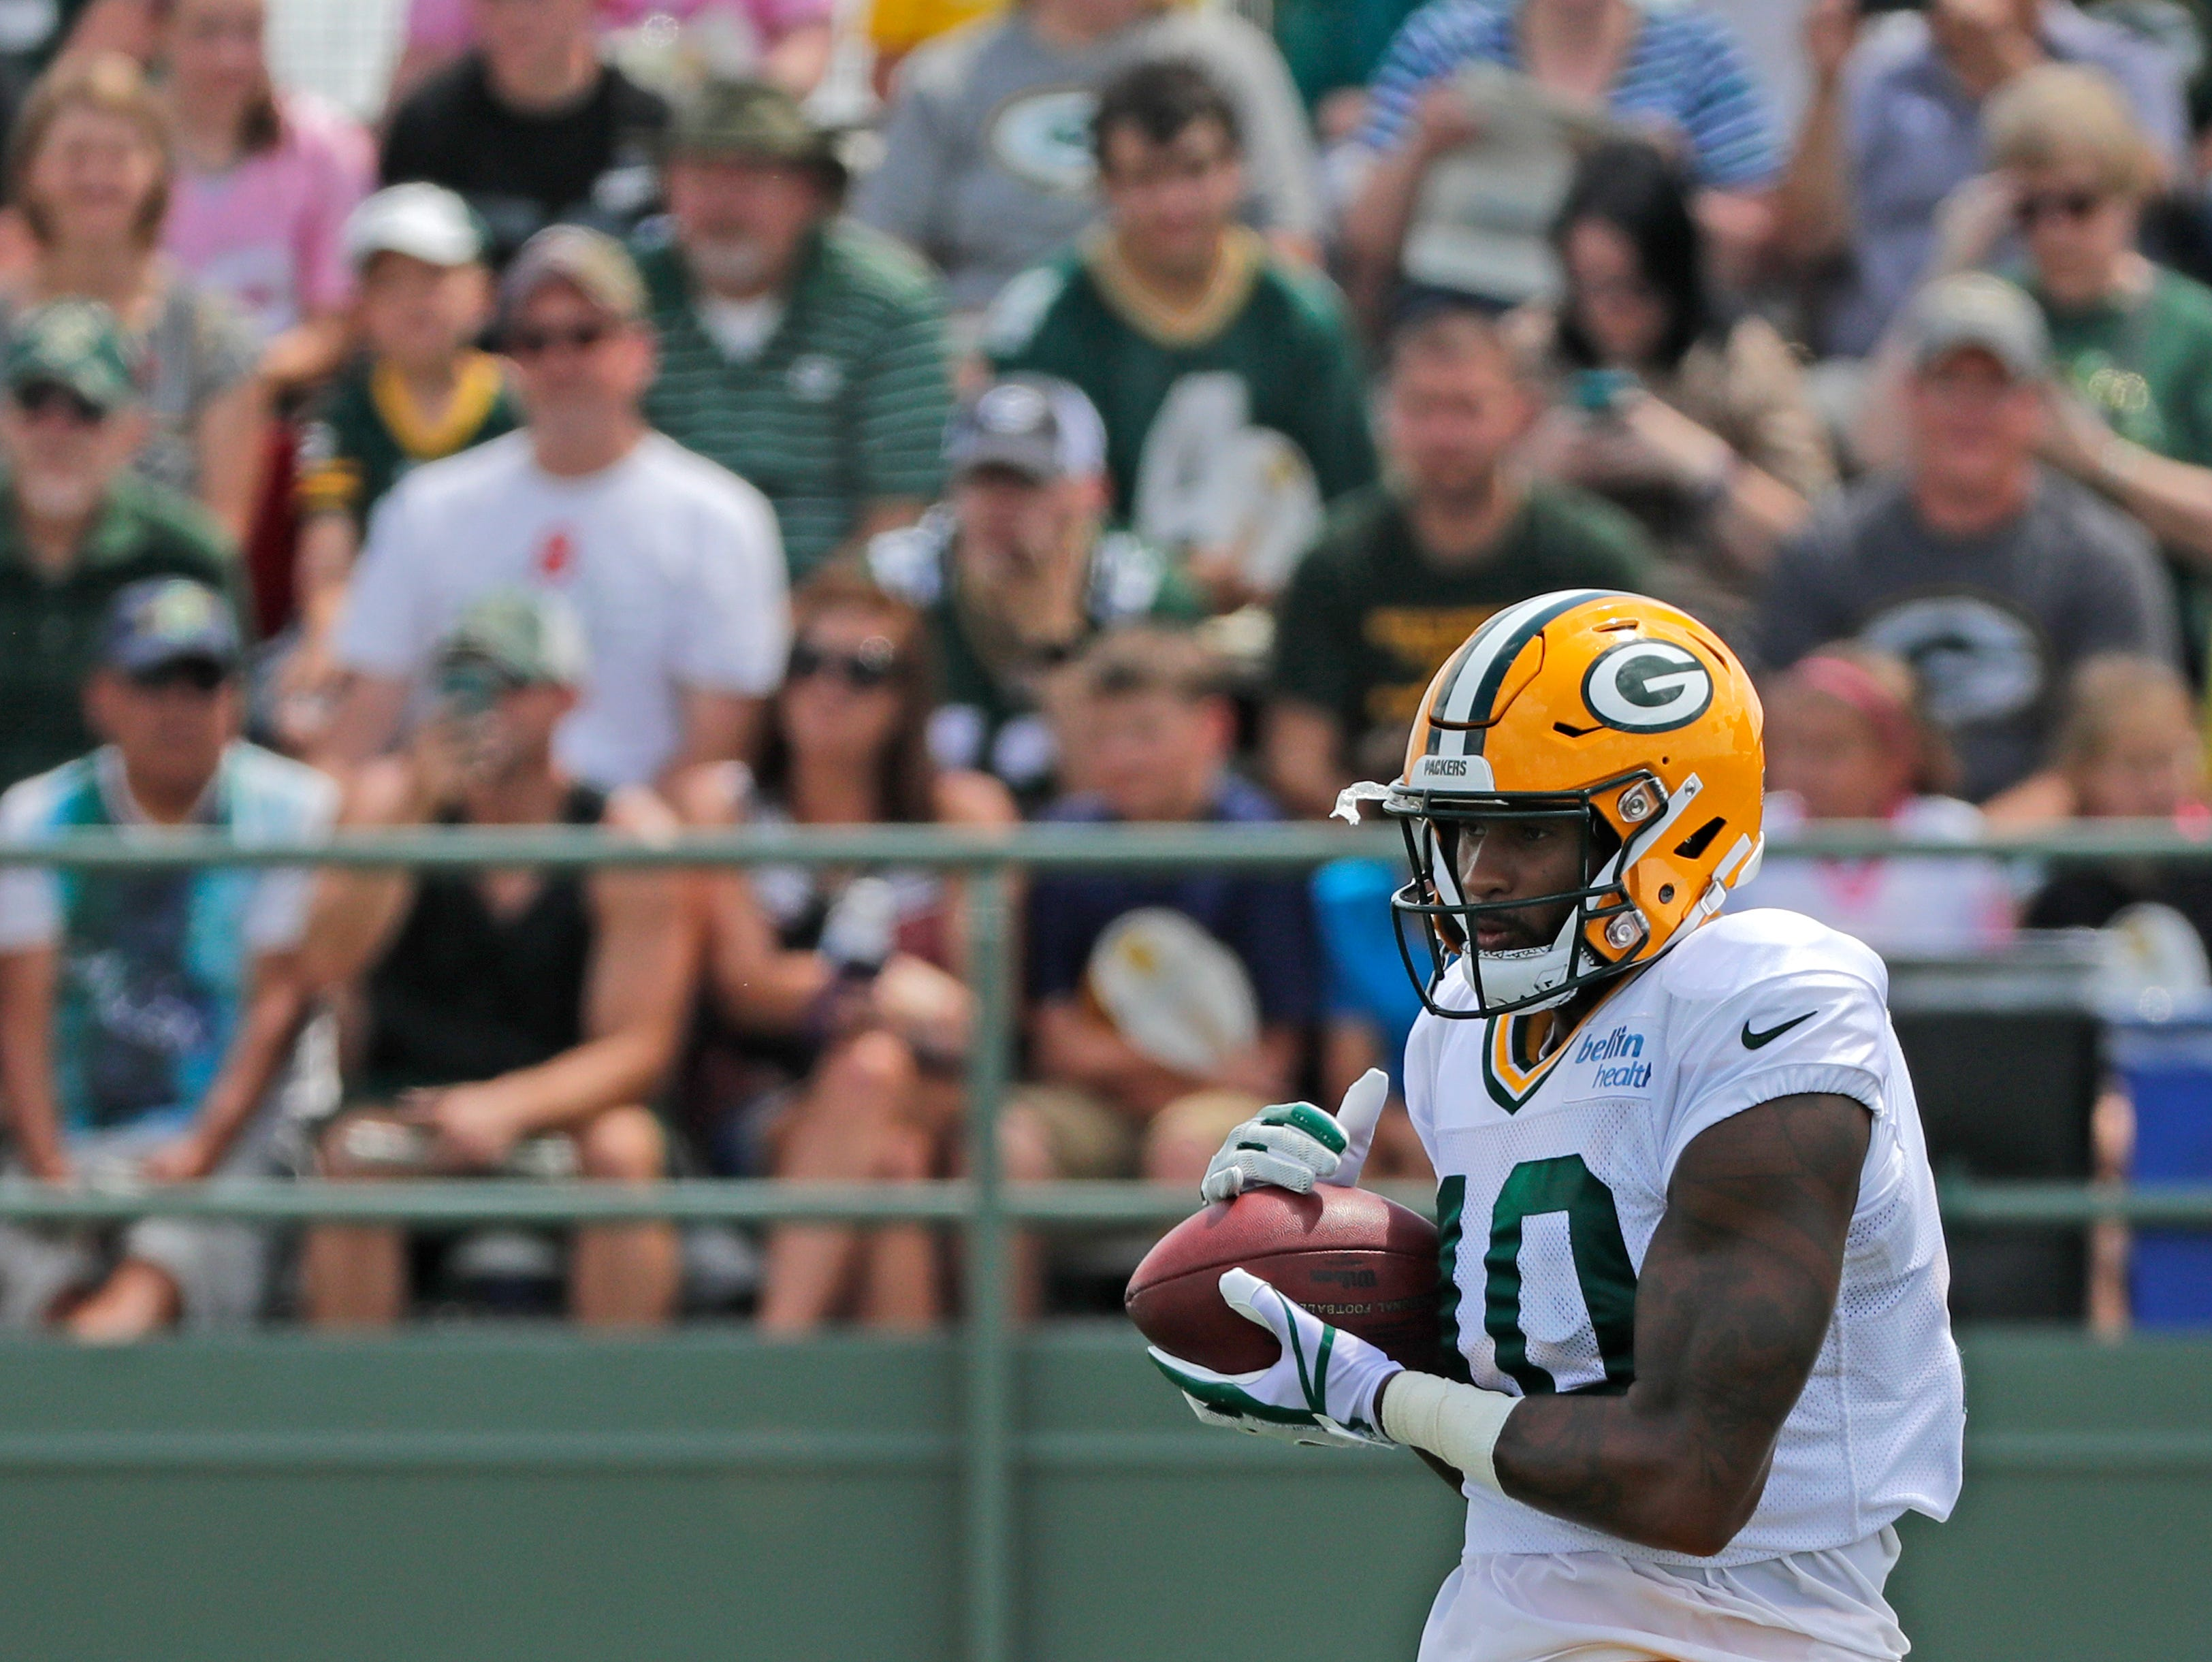 Green Bay Packers wide receiver DeAngelo Yancey (10) catches a ball during training camp practice at Ray Nitschke Field on Friday, August 3, 2018 in Ashwaubenon, Wis. 